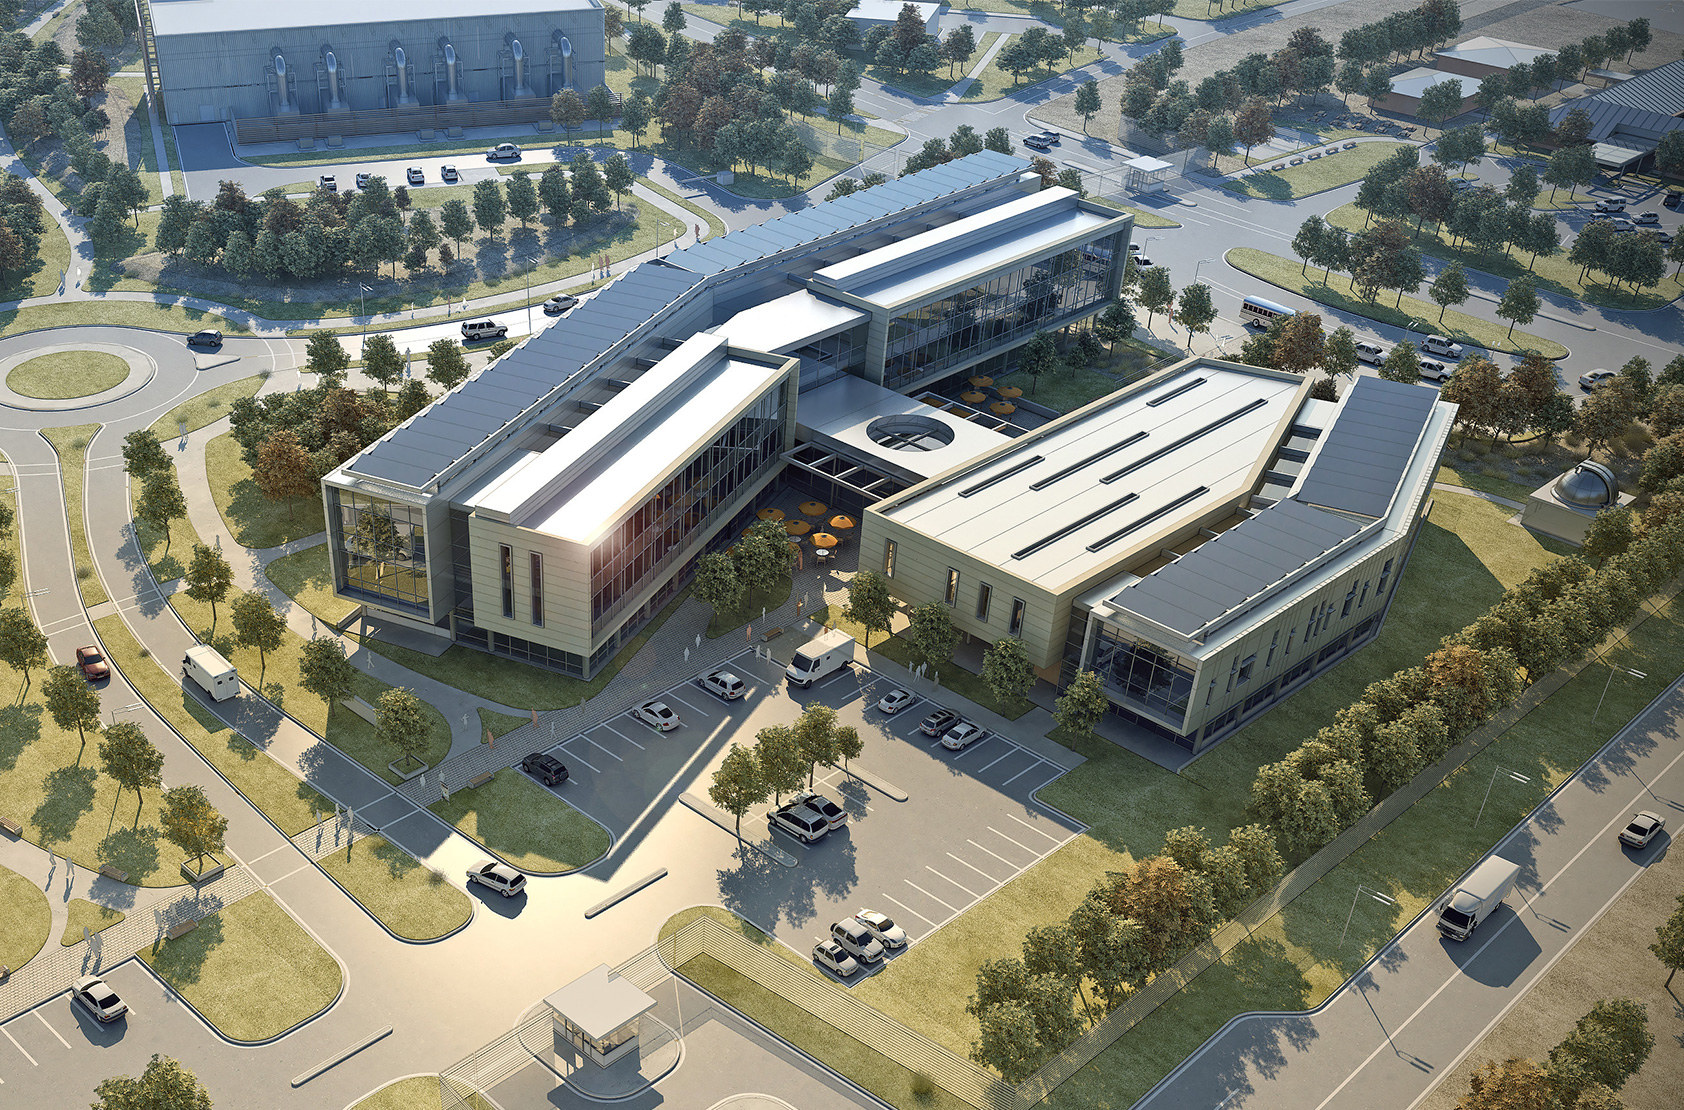 Lawrence Livermore National Laboratory<br />Sandia National Laboratories - Livermore Valley Open Campus Master Plan and Ongoing Implementation